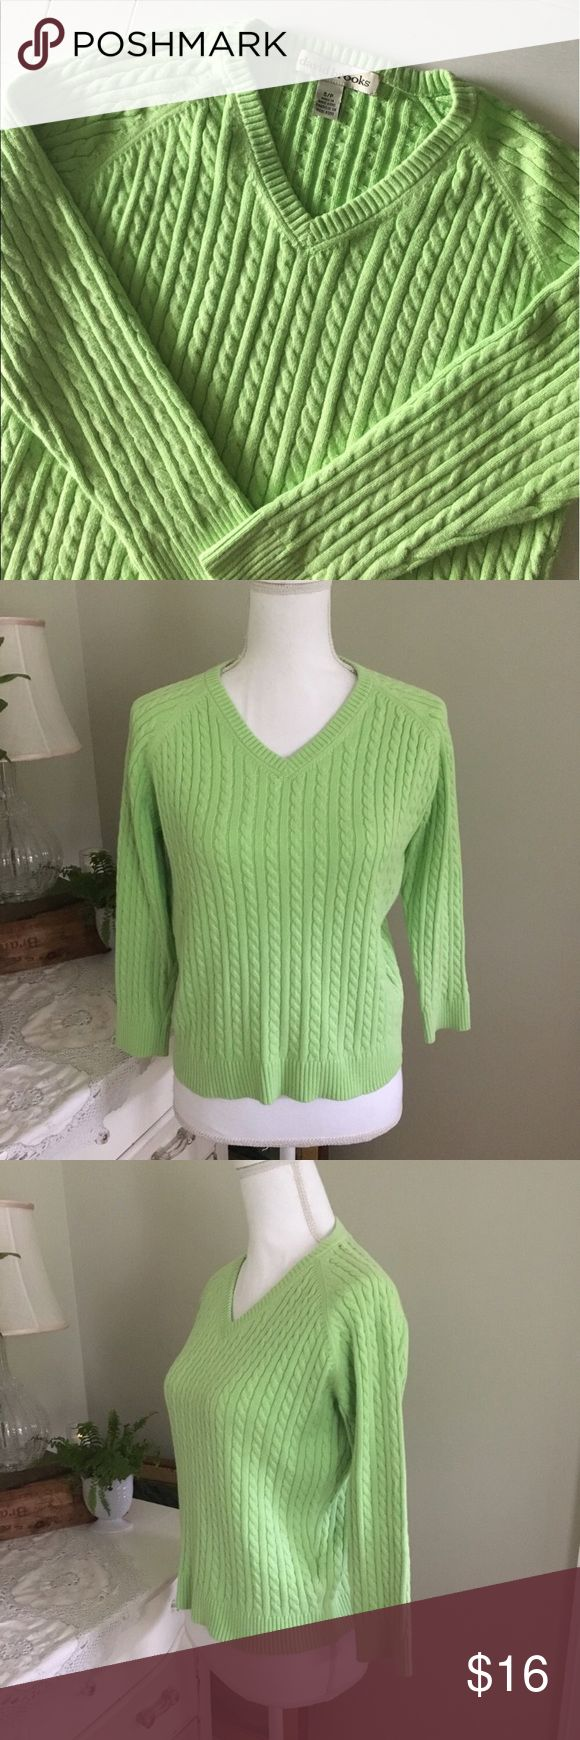 "David Brooks Lime Green Cable Knit Sweater This lime green Cable Knit sweater from David Brooks features 3/4 sleeves and a v neckline. Size: Small. Chest: 18"". Length: 21.25"". #0113 David Brooks Sweaters"